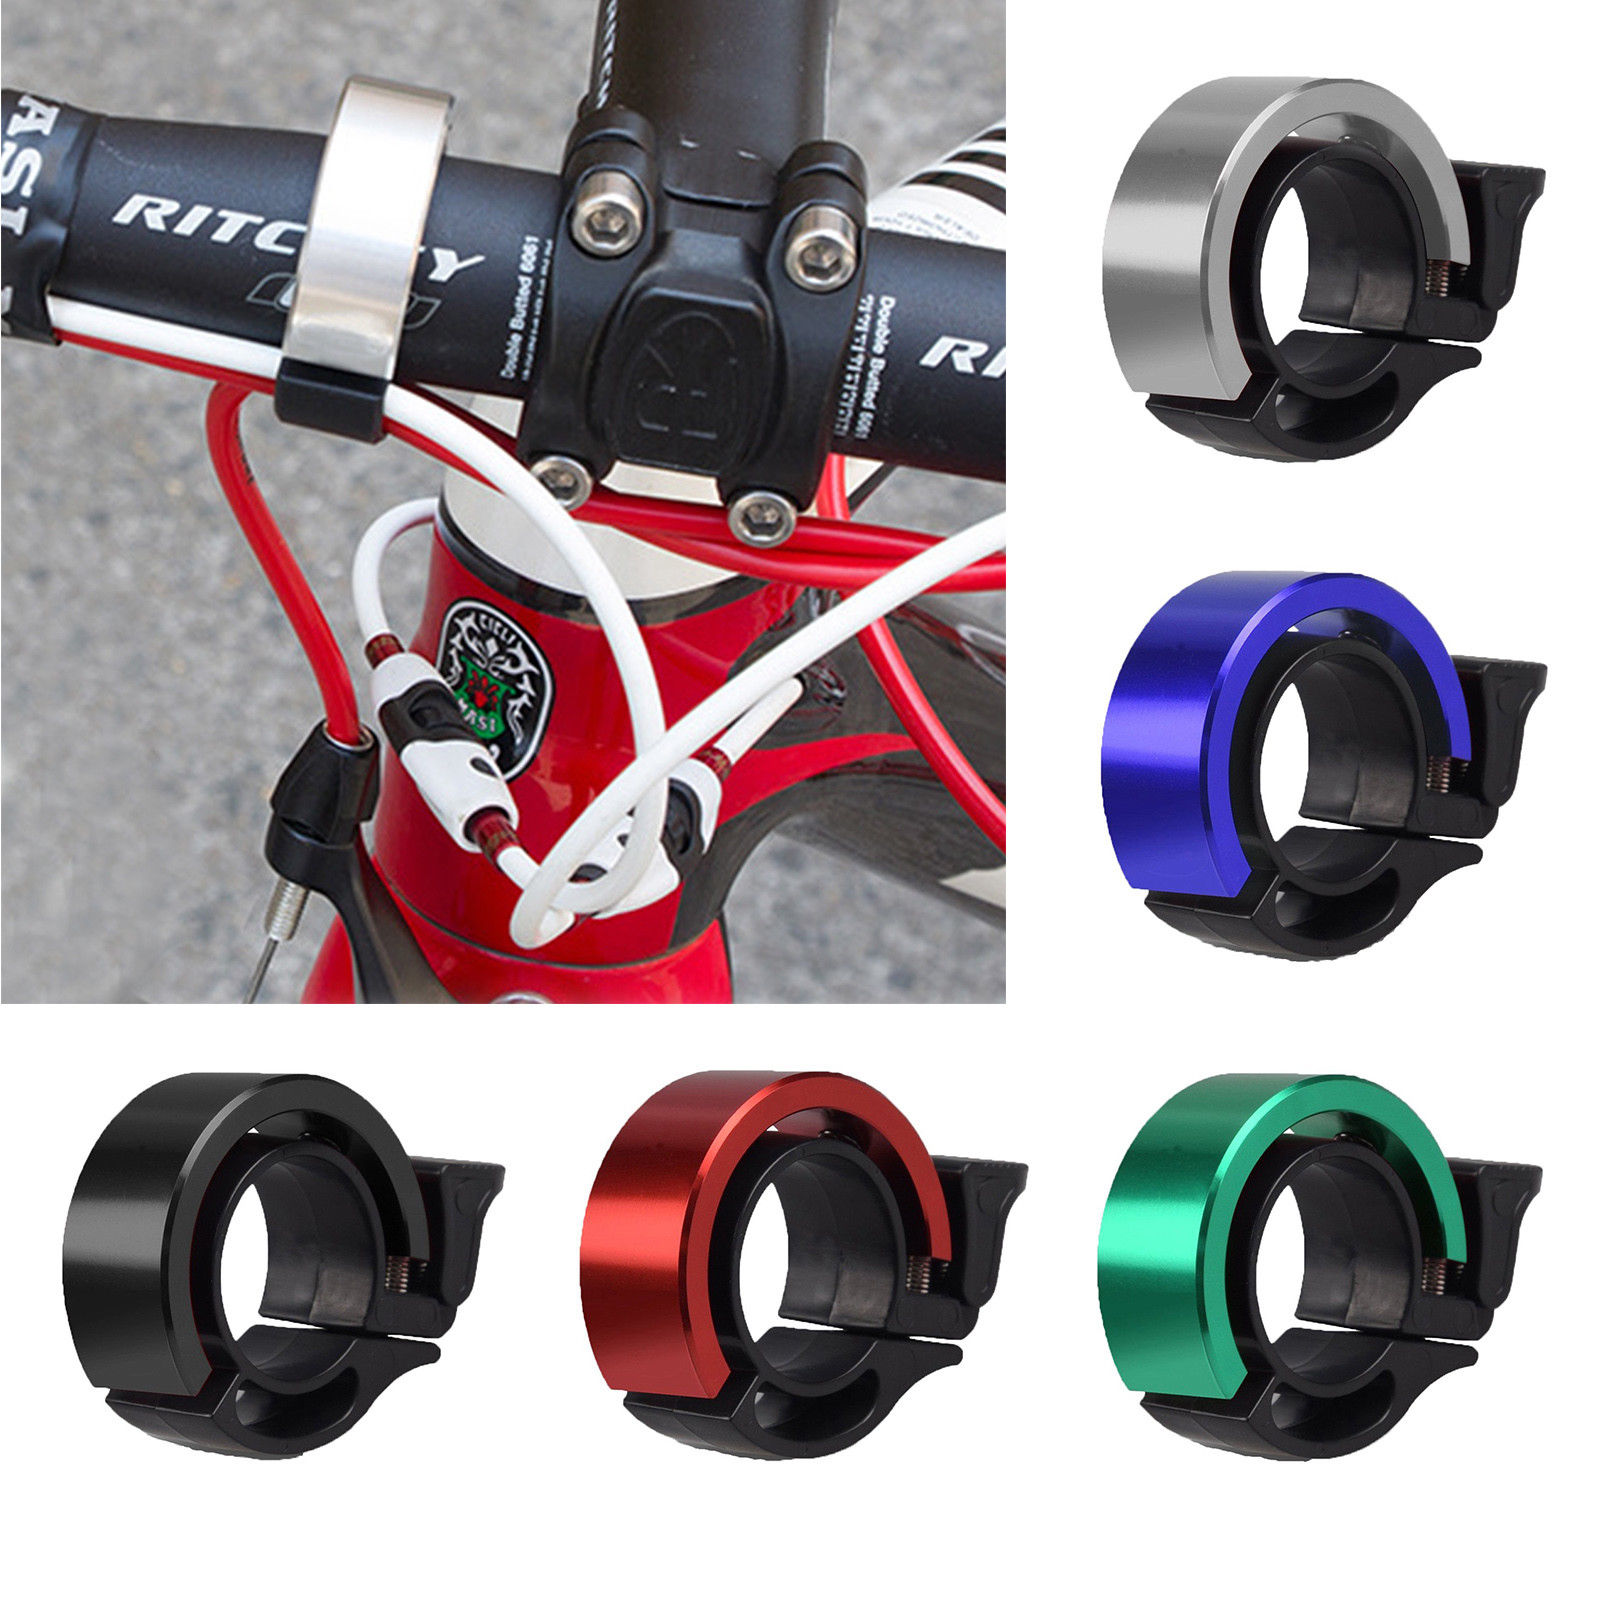 Details about Cycling Bicycle MTB Loud Speaker Bike Bell Ring Alarm & Compass Metal Horns UK